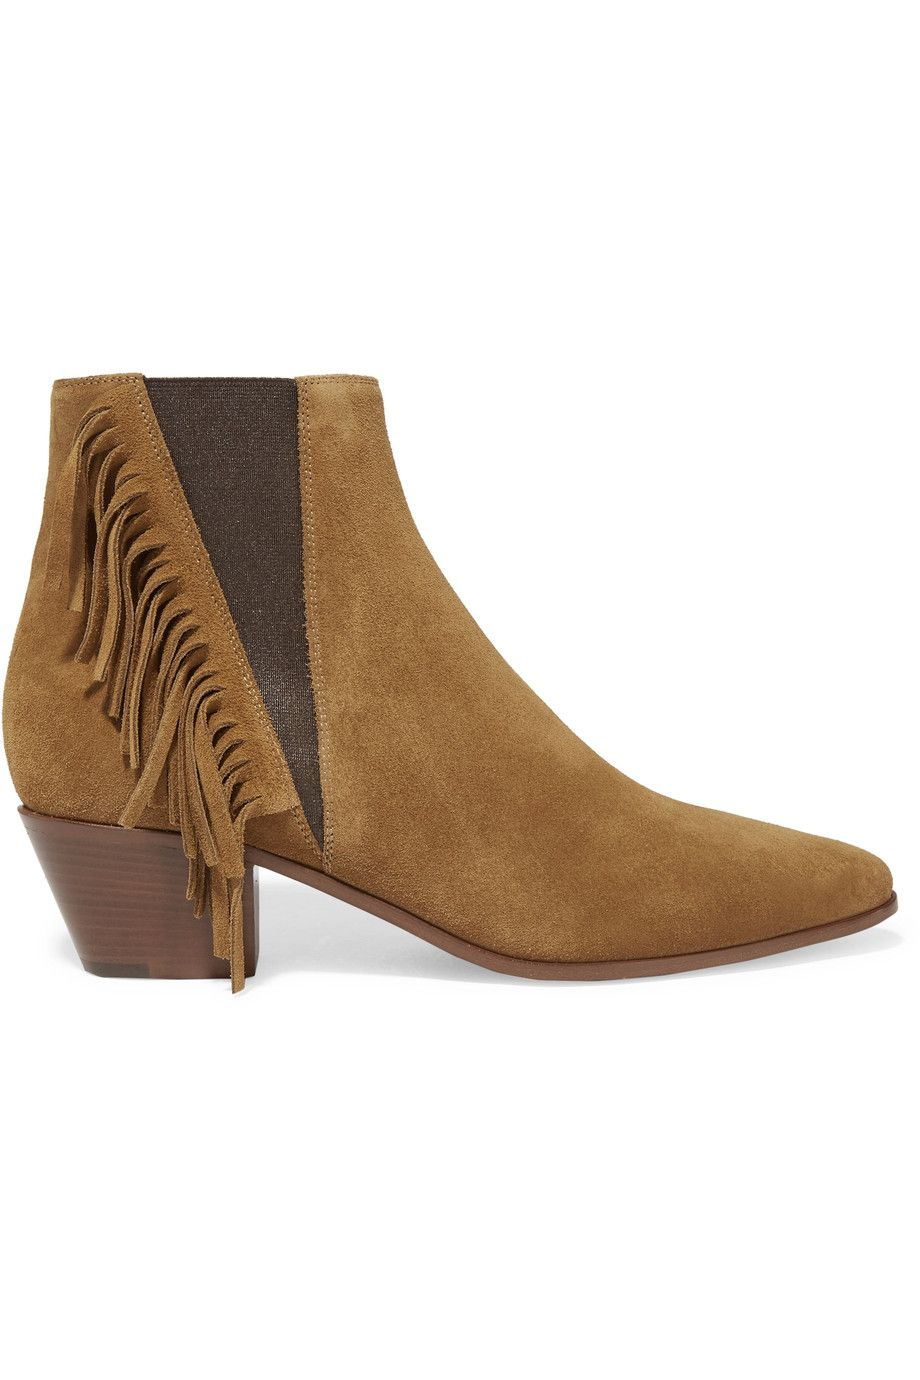 SAINT LAURENT Fringed Suede Ankle Boots.  saintlaurent  shoes  boots ... 5033e979d211